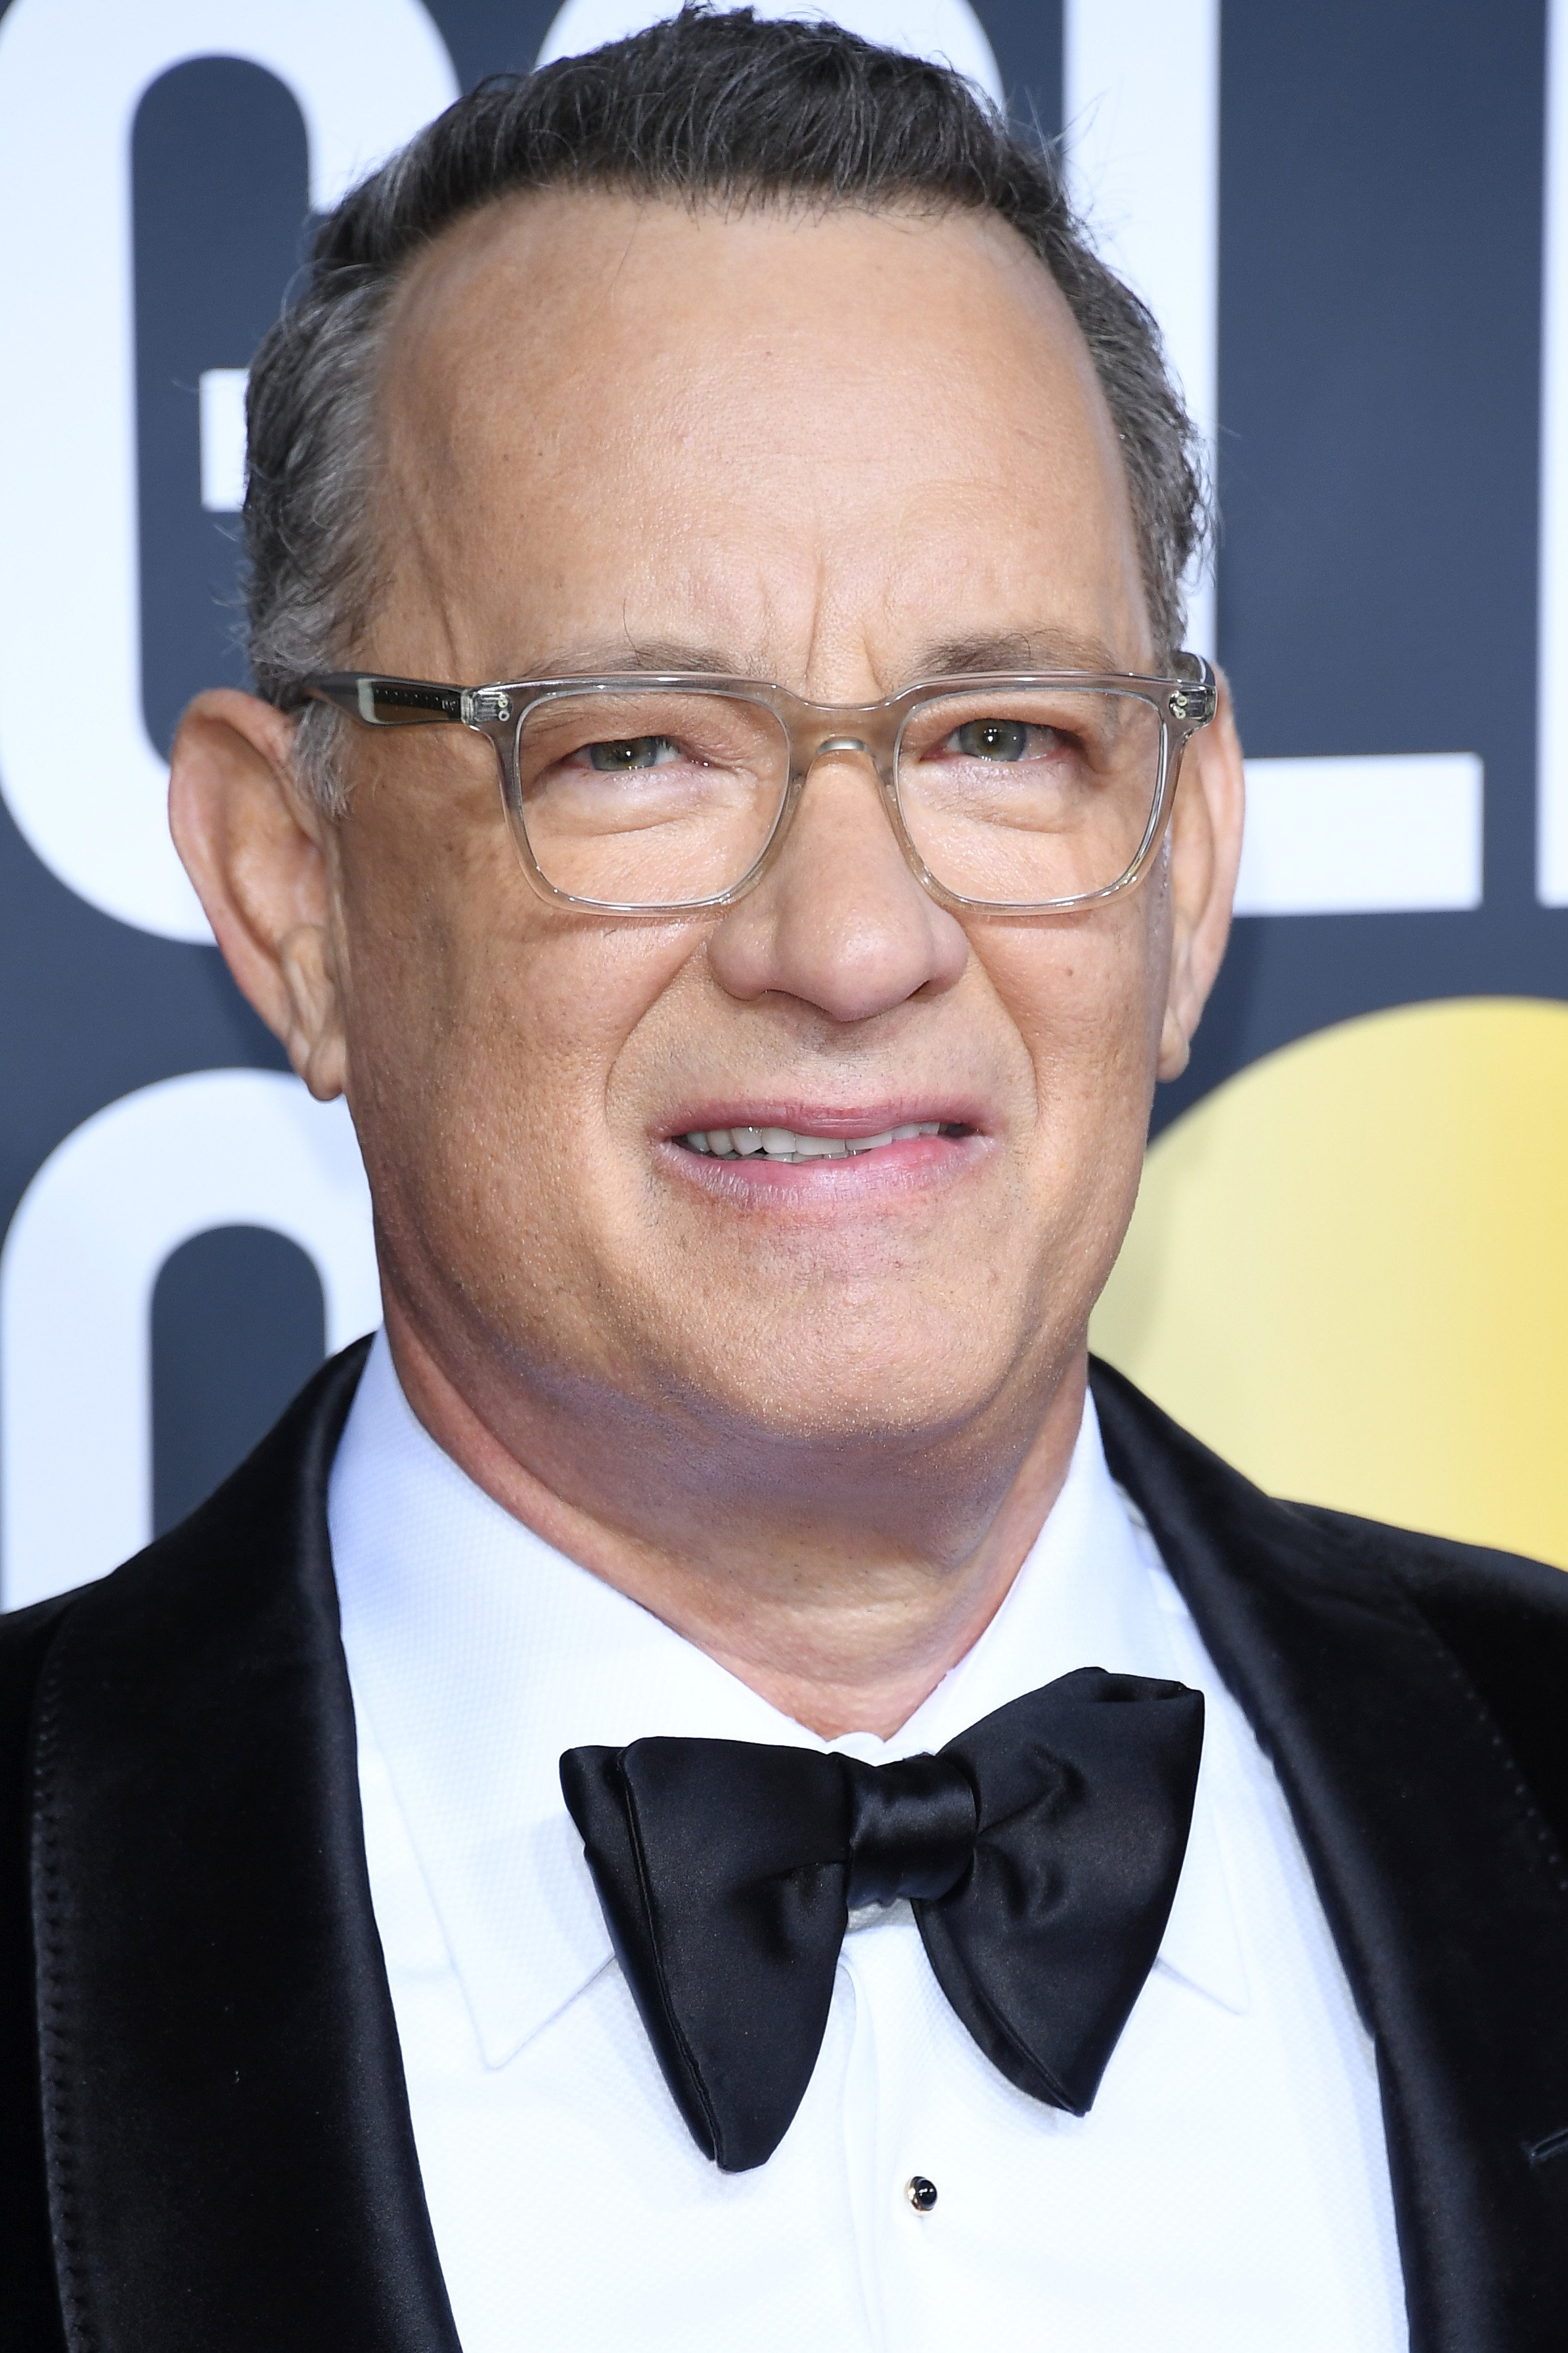 Tom Hanks at the 77th Annual Golden Globe Awards at The Beverly Hilton Hotel in Beverly Hills, California | Photo: Daniele Venturelli/WireImage